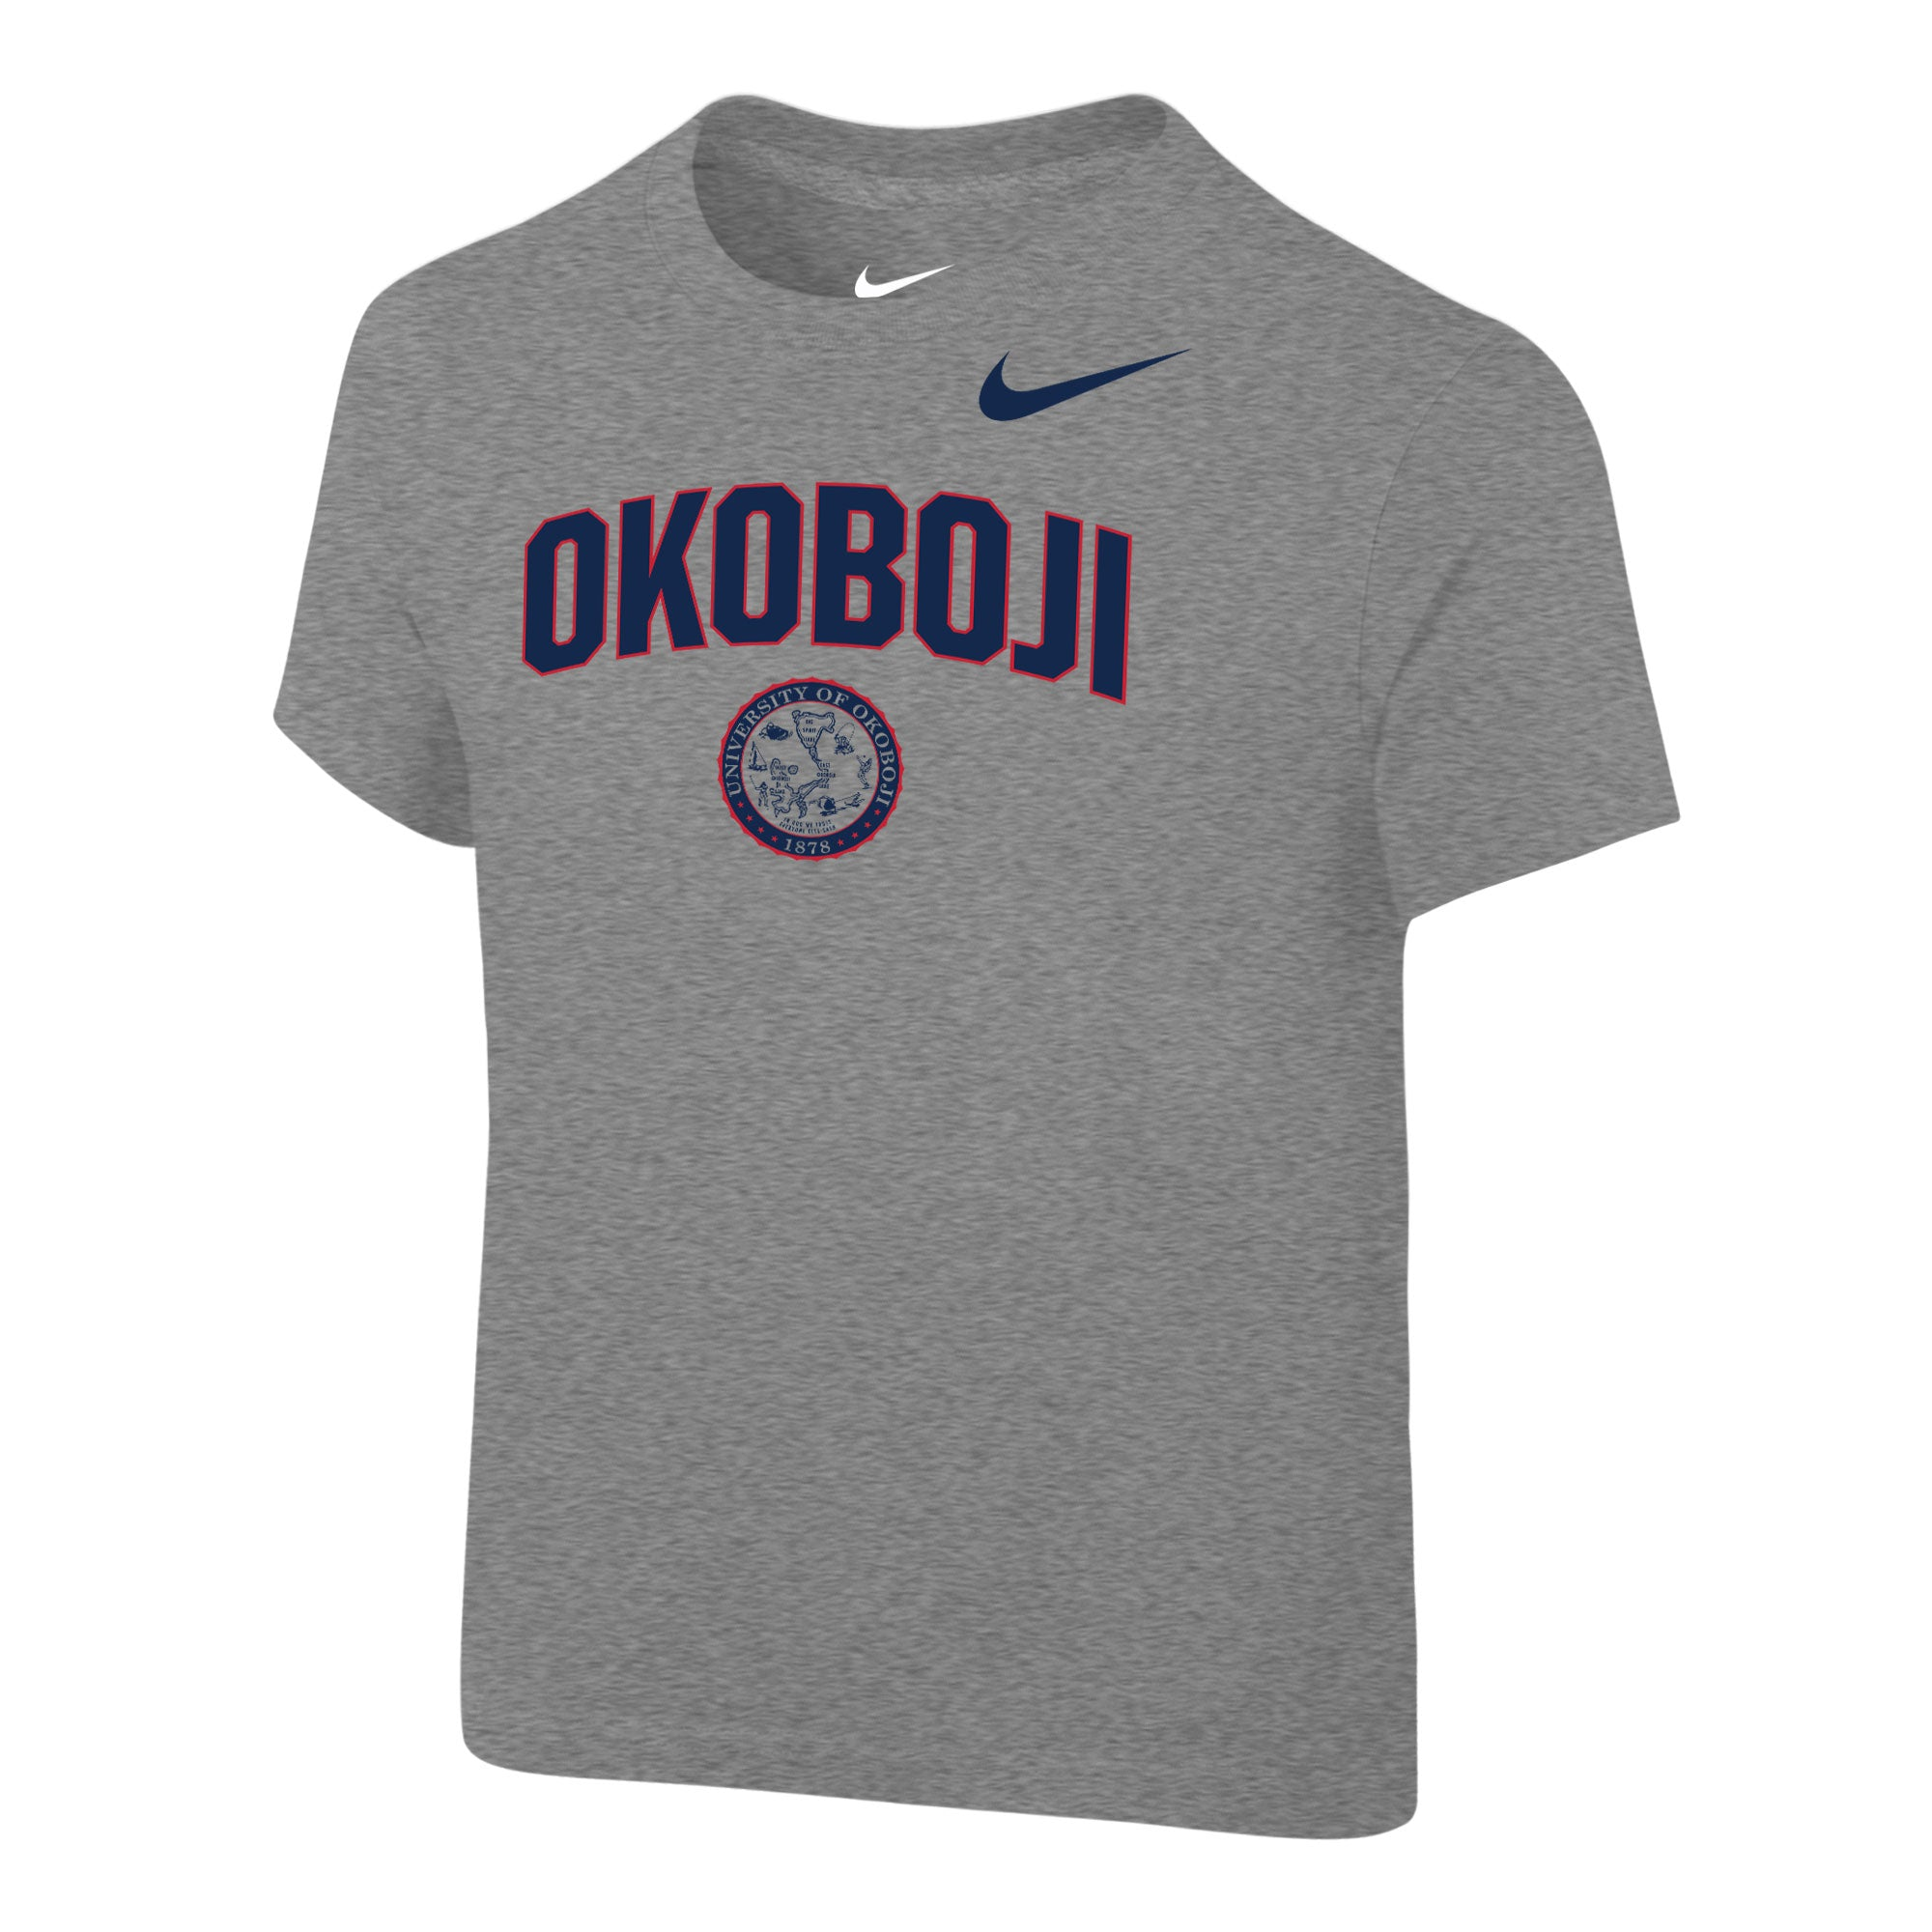 Okoboji Toddler NIKE Core Cotton Short Sleeve Tee - Dark Heather